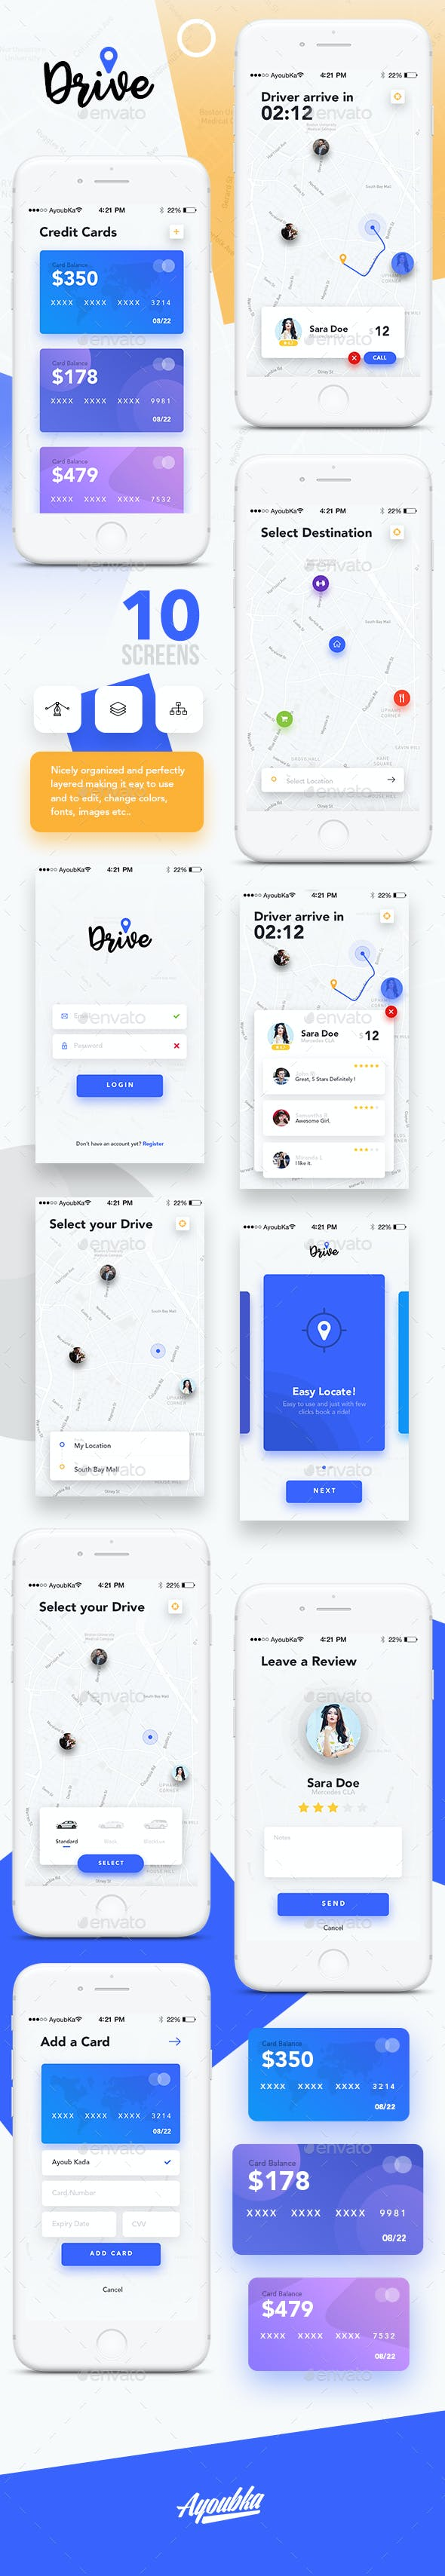 Drive - Mobile App UI Kit Design